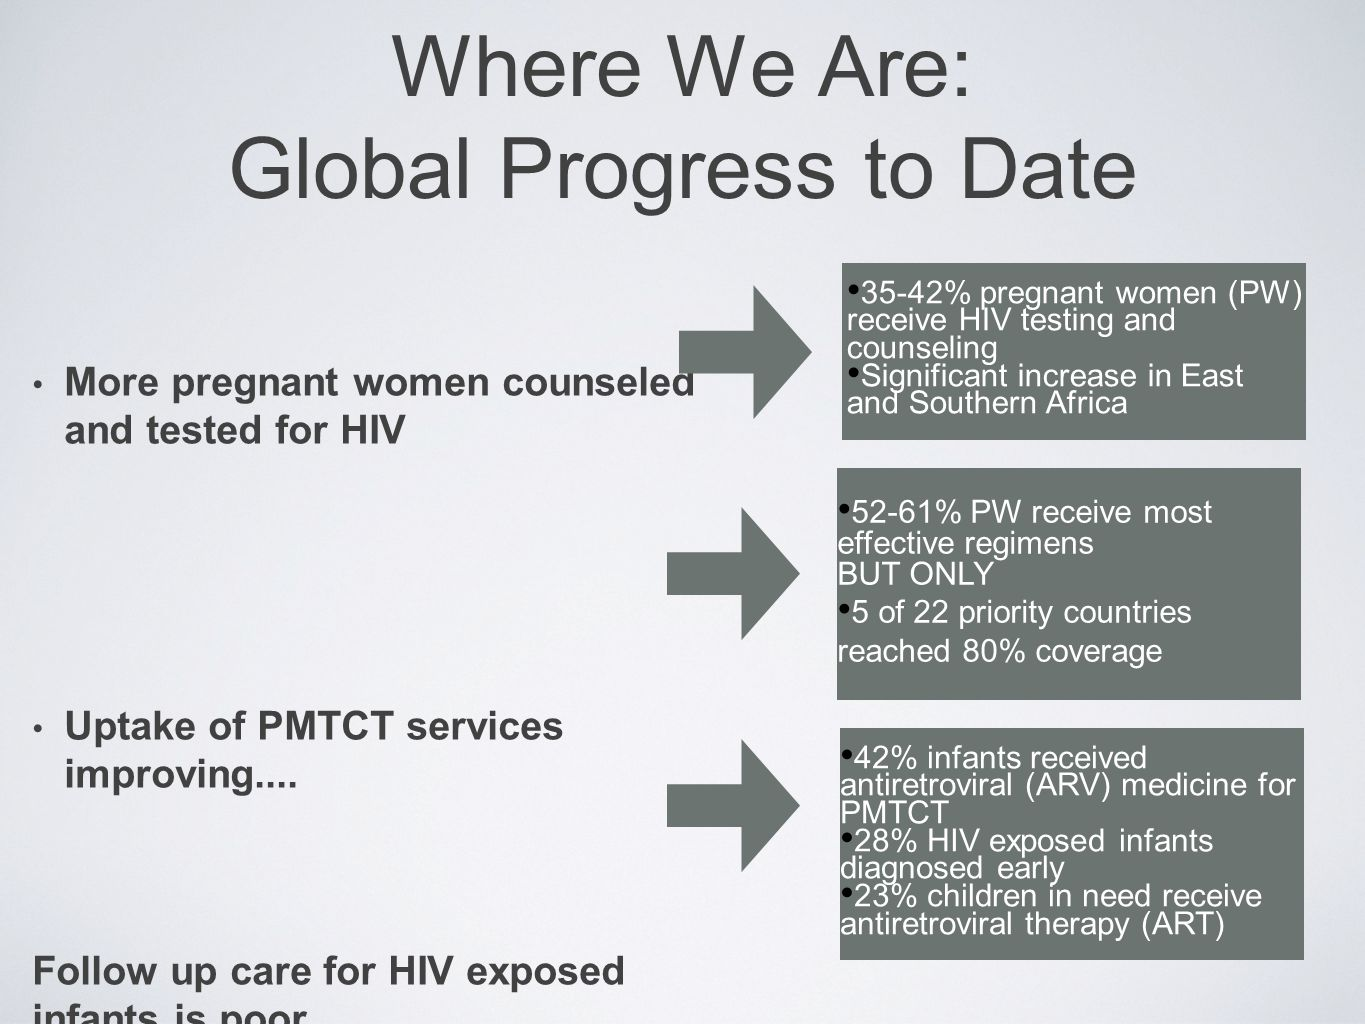 Where We Are: Global Progress to Date More pregnant women counseled and tested for HIV Uptake of PMTCT services improving....